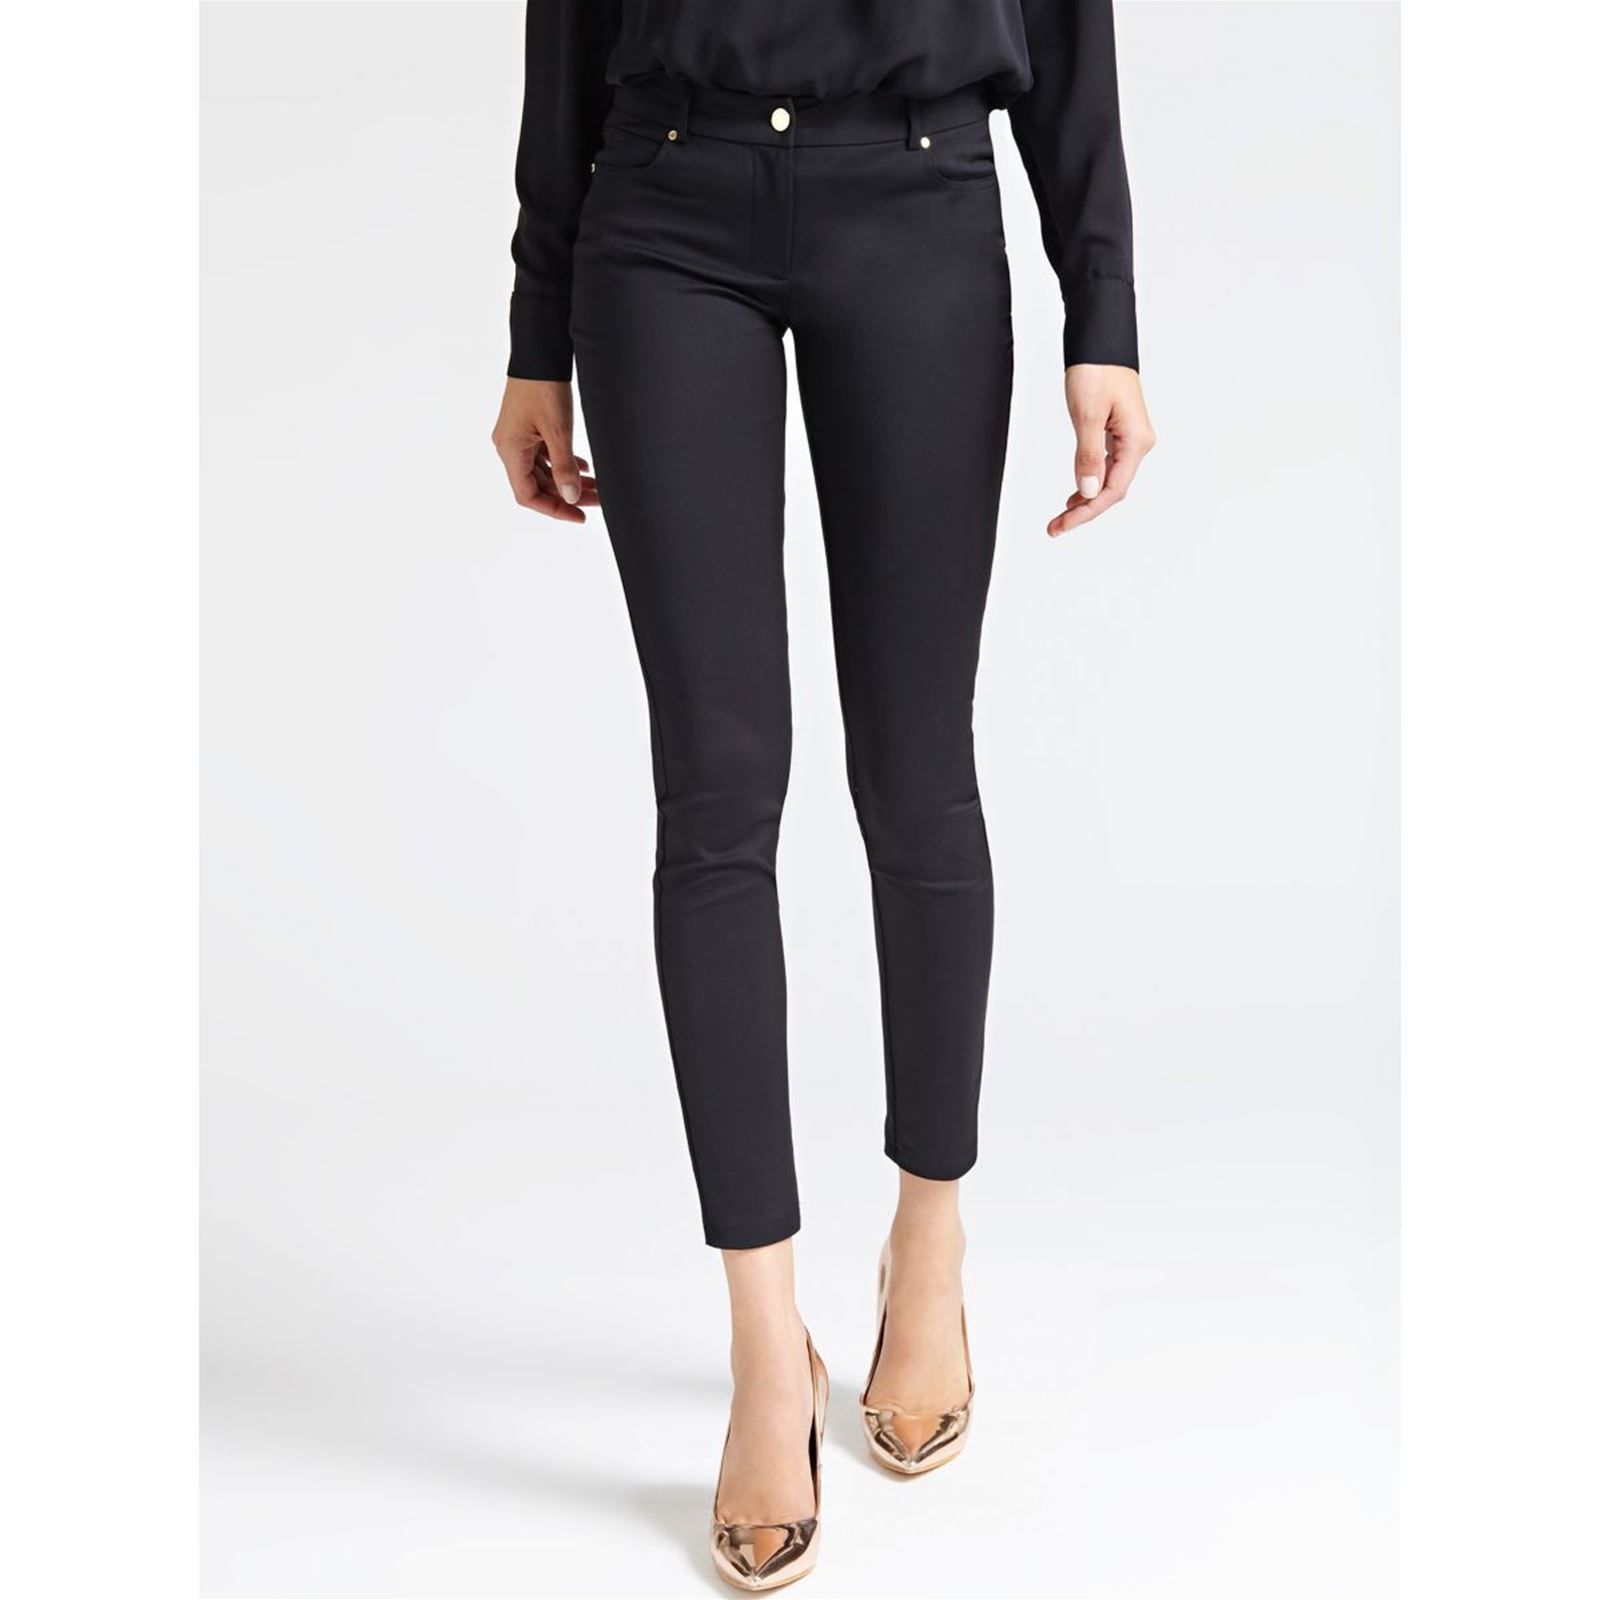 Marciano Los Angeles Pantalon 5 poches - noir   BrandAlley 70dee9d55c62